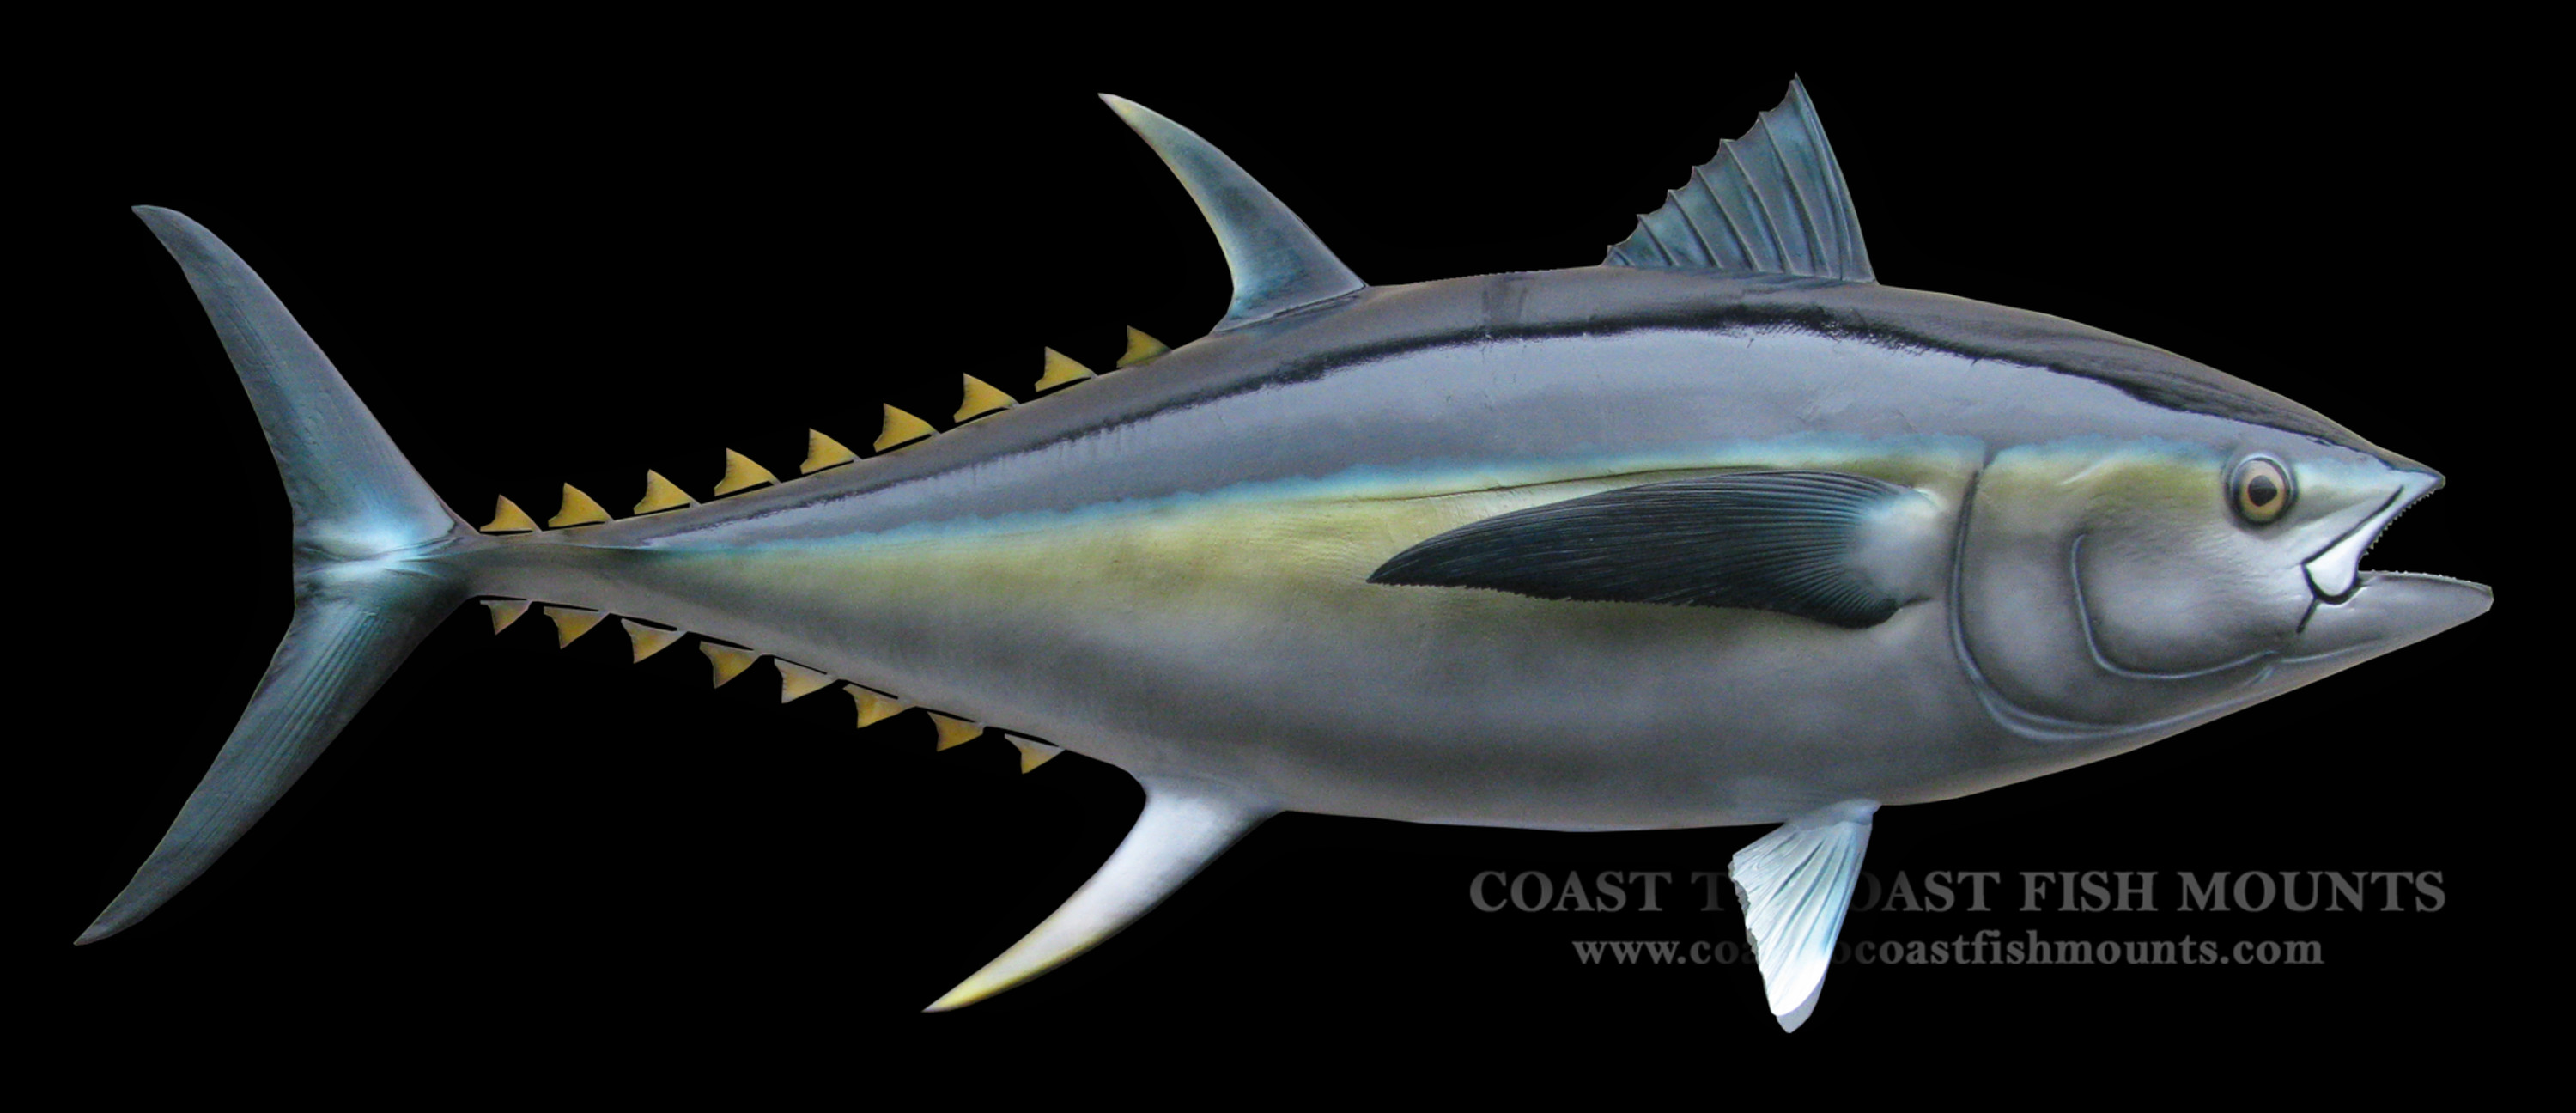 Bluefin tuna fish mount and fish replicas coast to coast for Tuna fish can